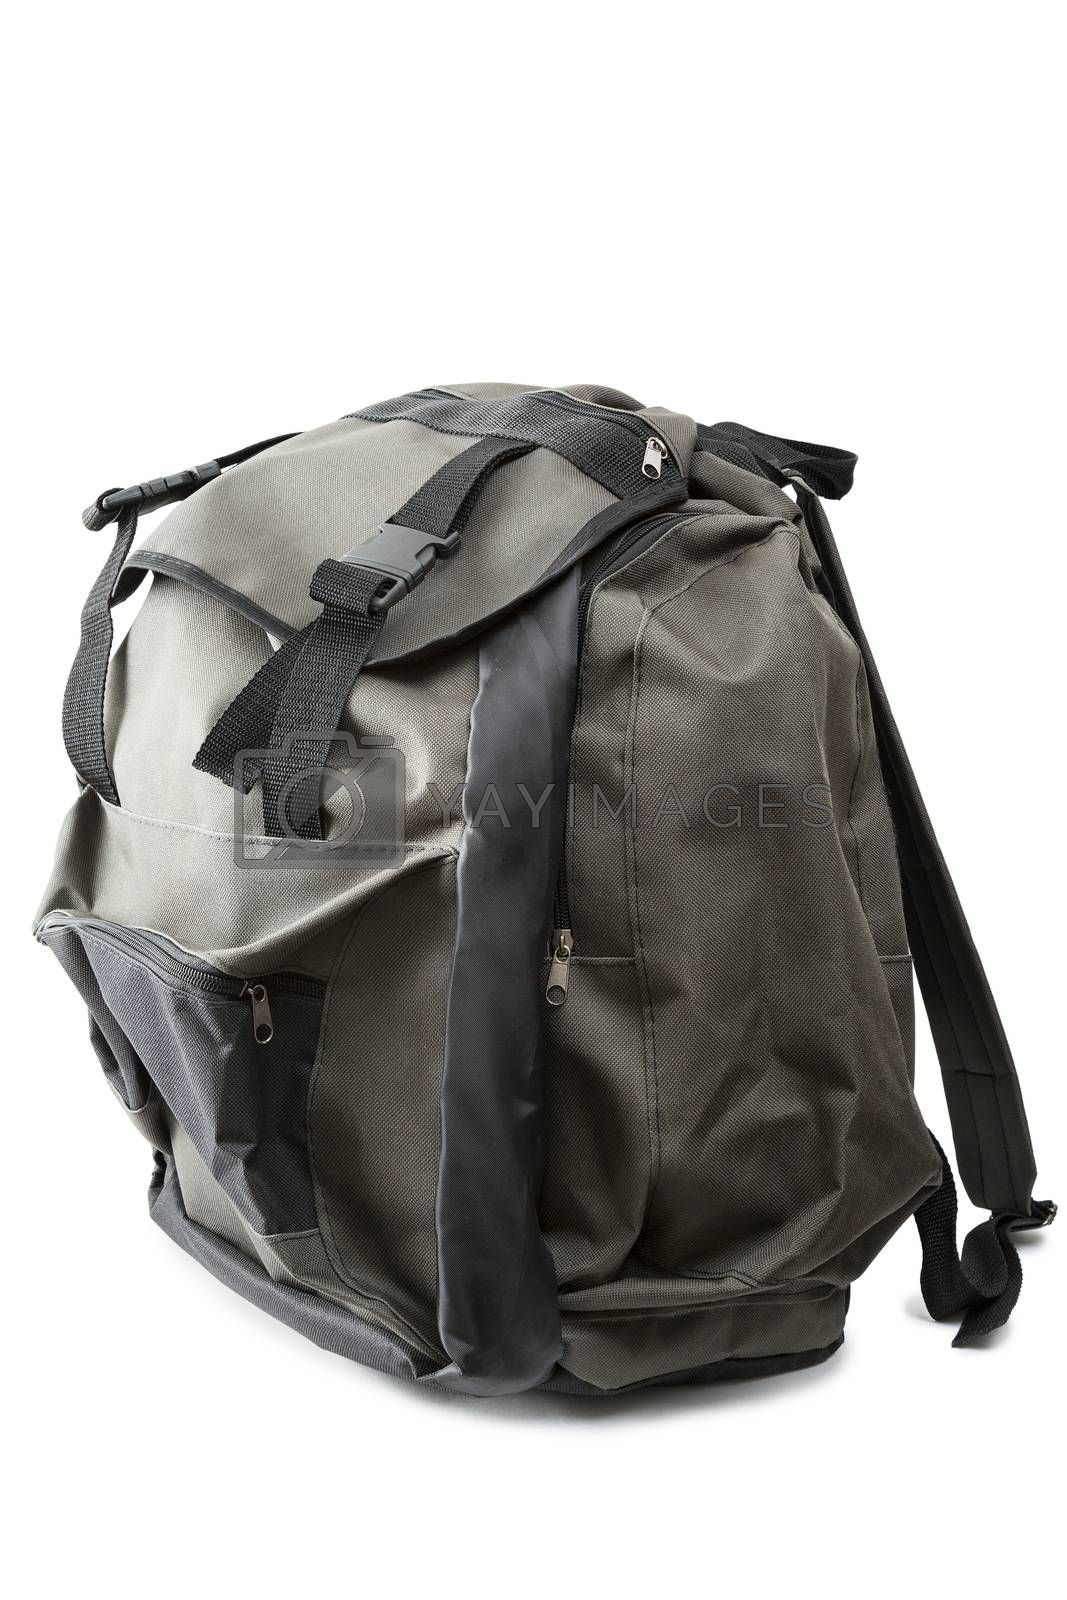 A small backpack is isolated on a white background